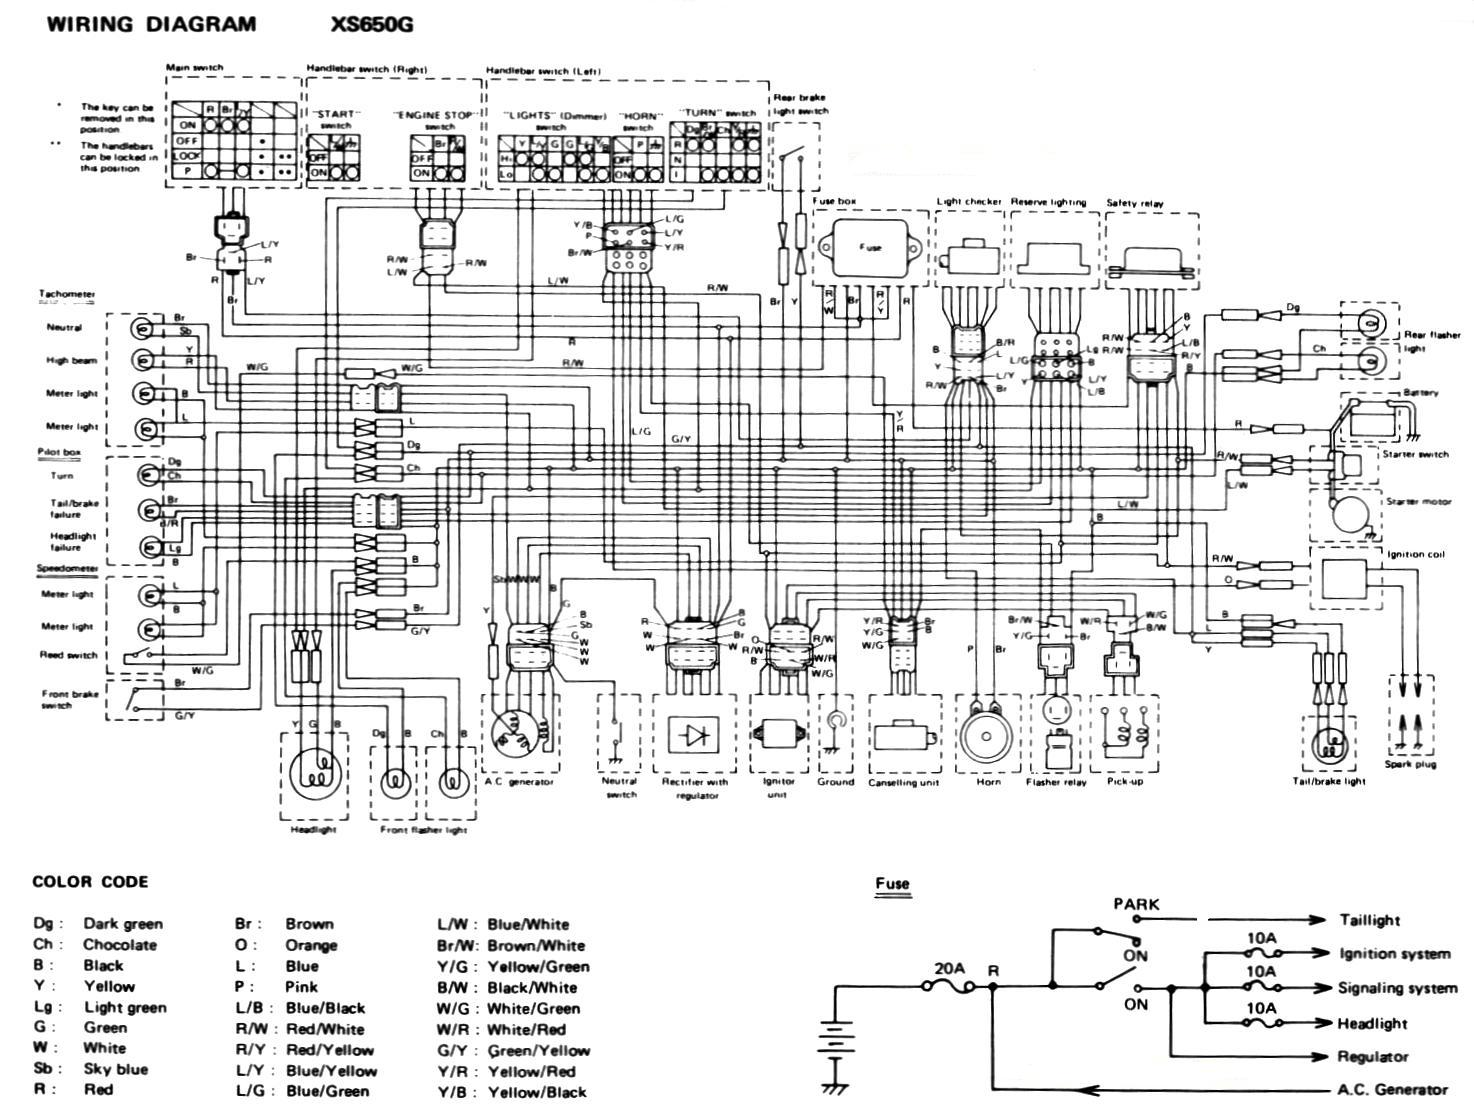 80XS650G wiring diagrams 78 cx500 wiring diagram at nearapp.co